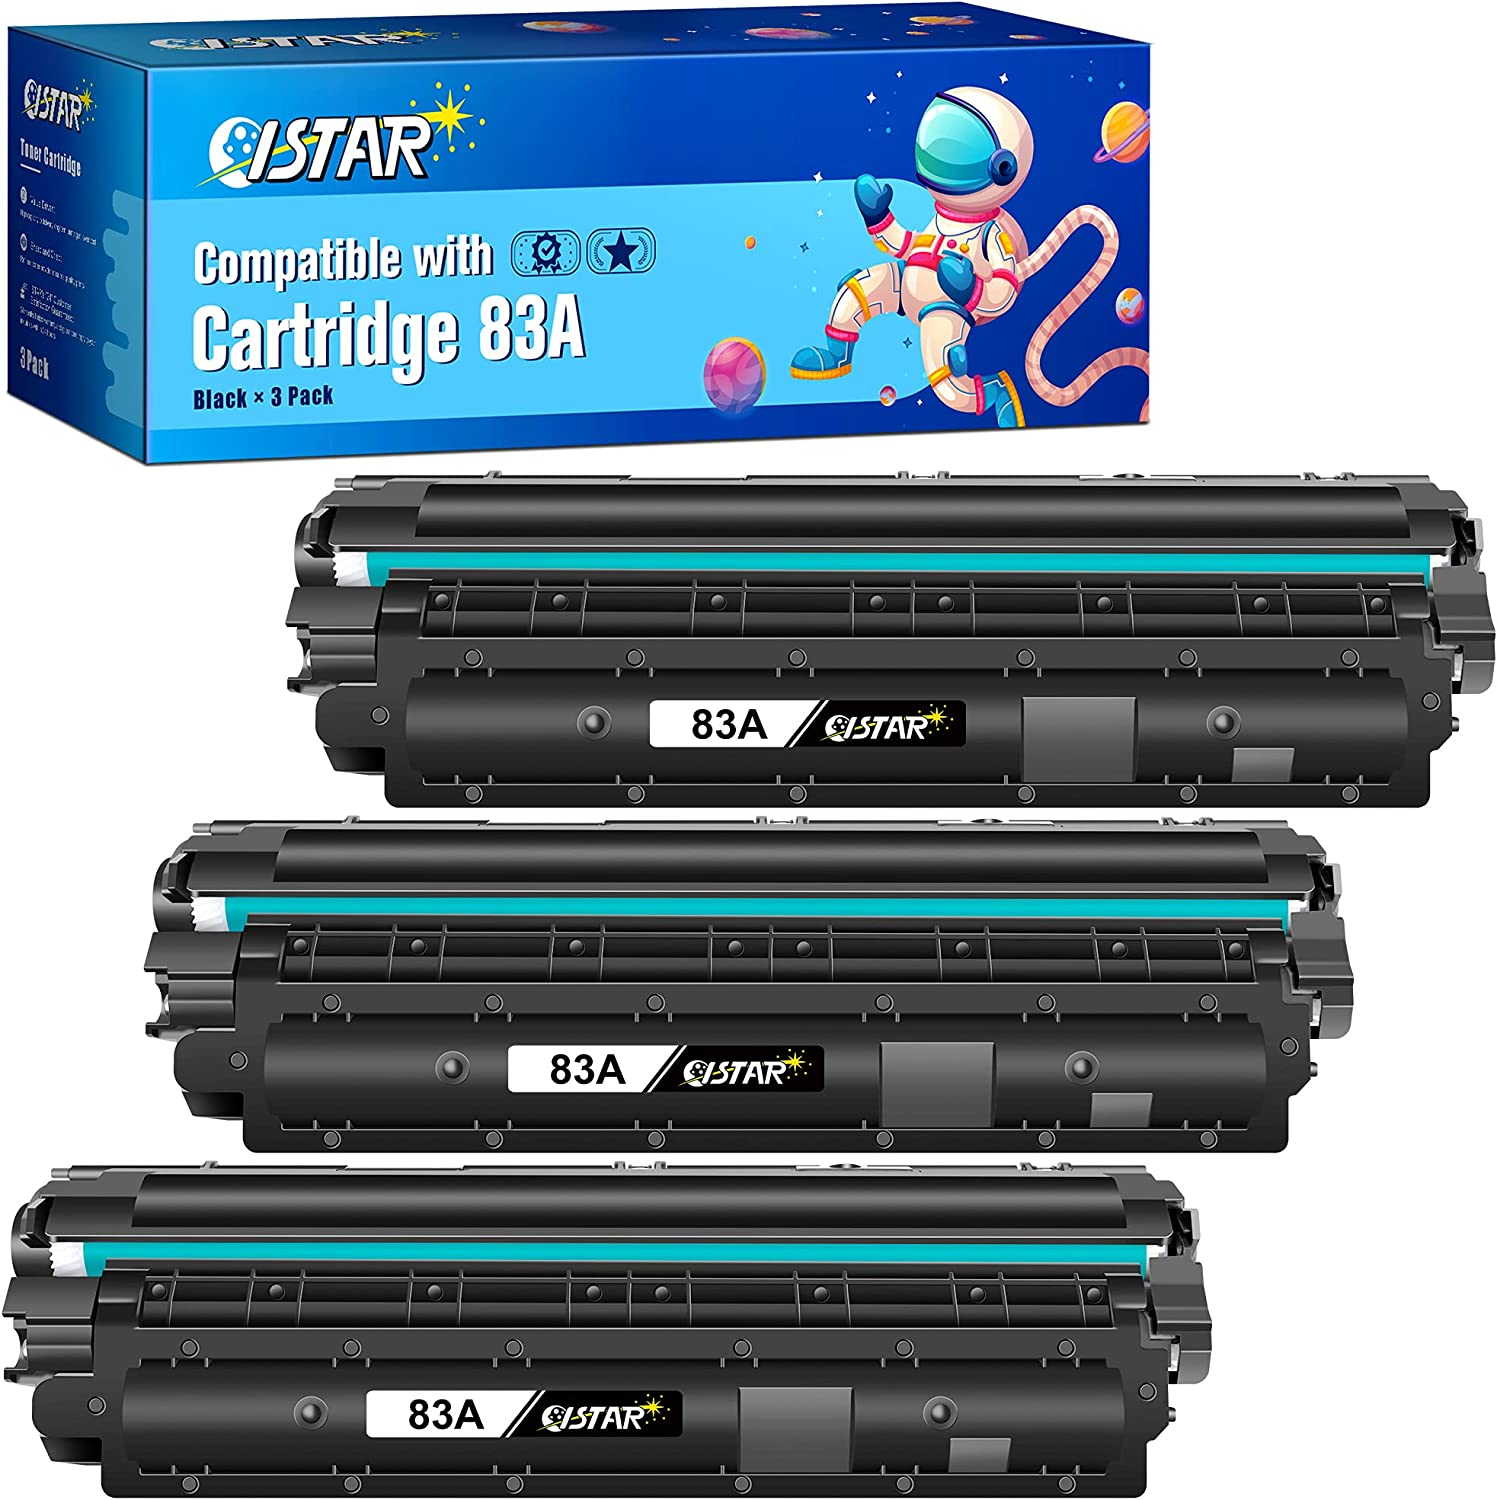 ISTAR Compatible Toner Cartridge Replacement for HP 83A CF283A to use with Laserjet Pro MFP M201dw M225dw M127fn M125nw M127fw Printer (High Yield, 3 Black)